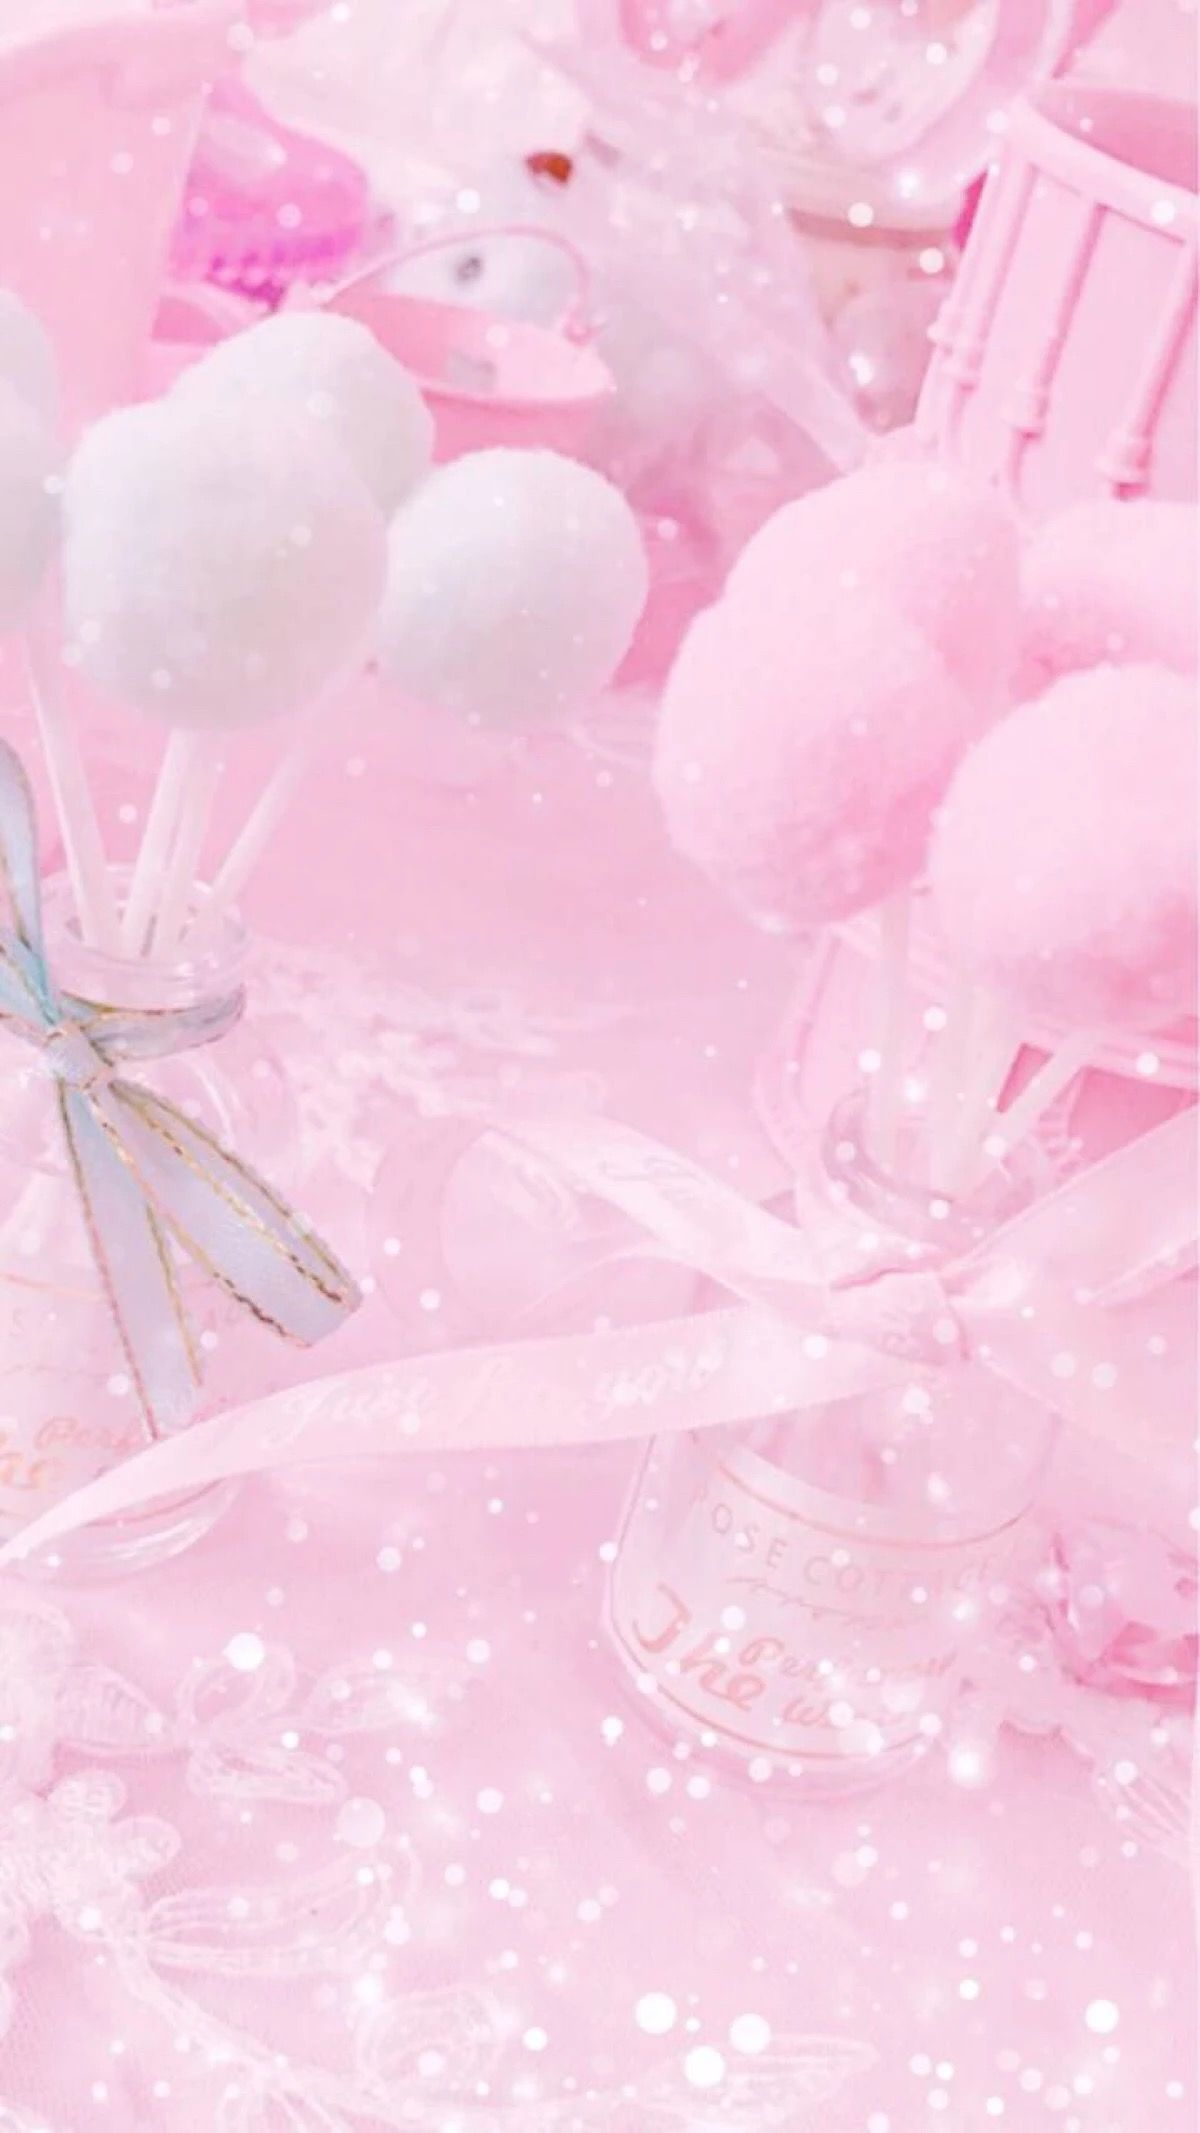 Pin By Marie Ressler On Pinky Pie Pastel Pink Aesthetic Pink Aesthetic Pink Wallpaper